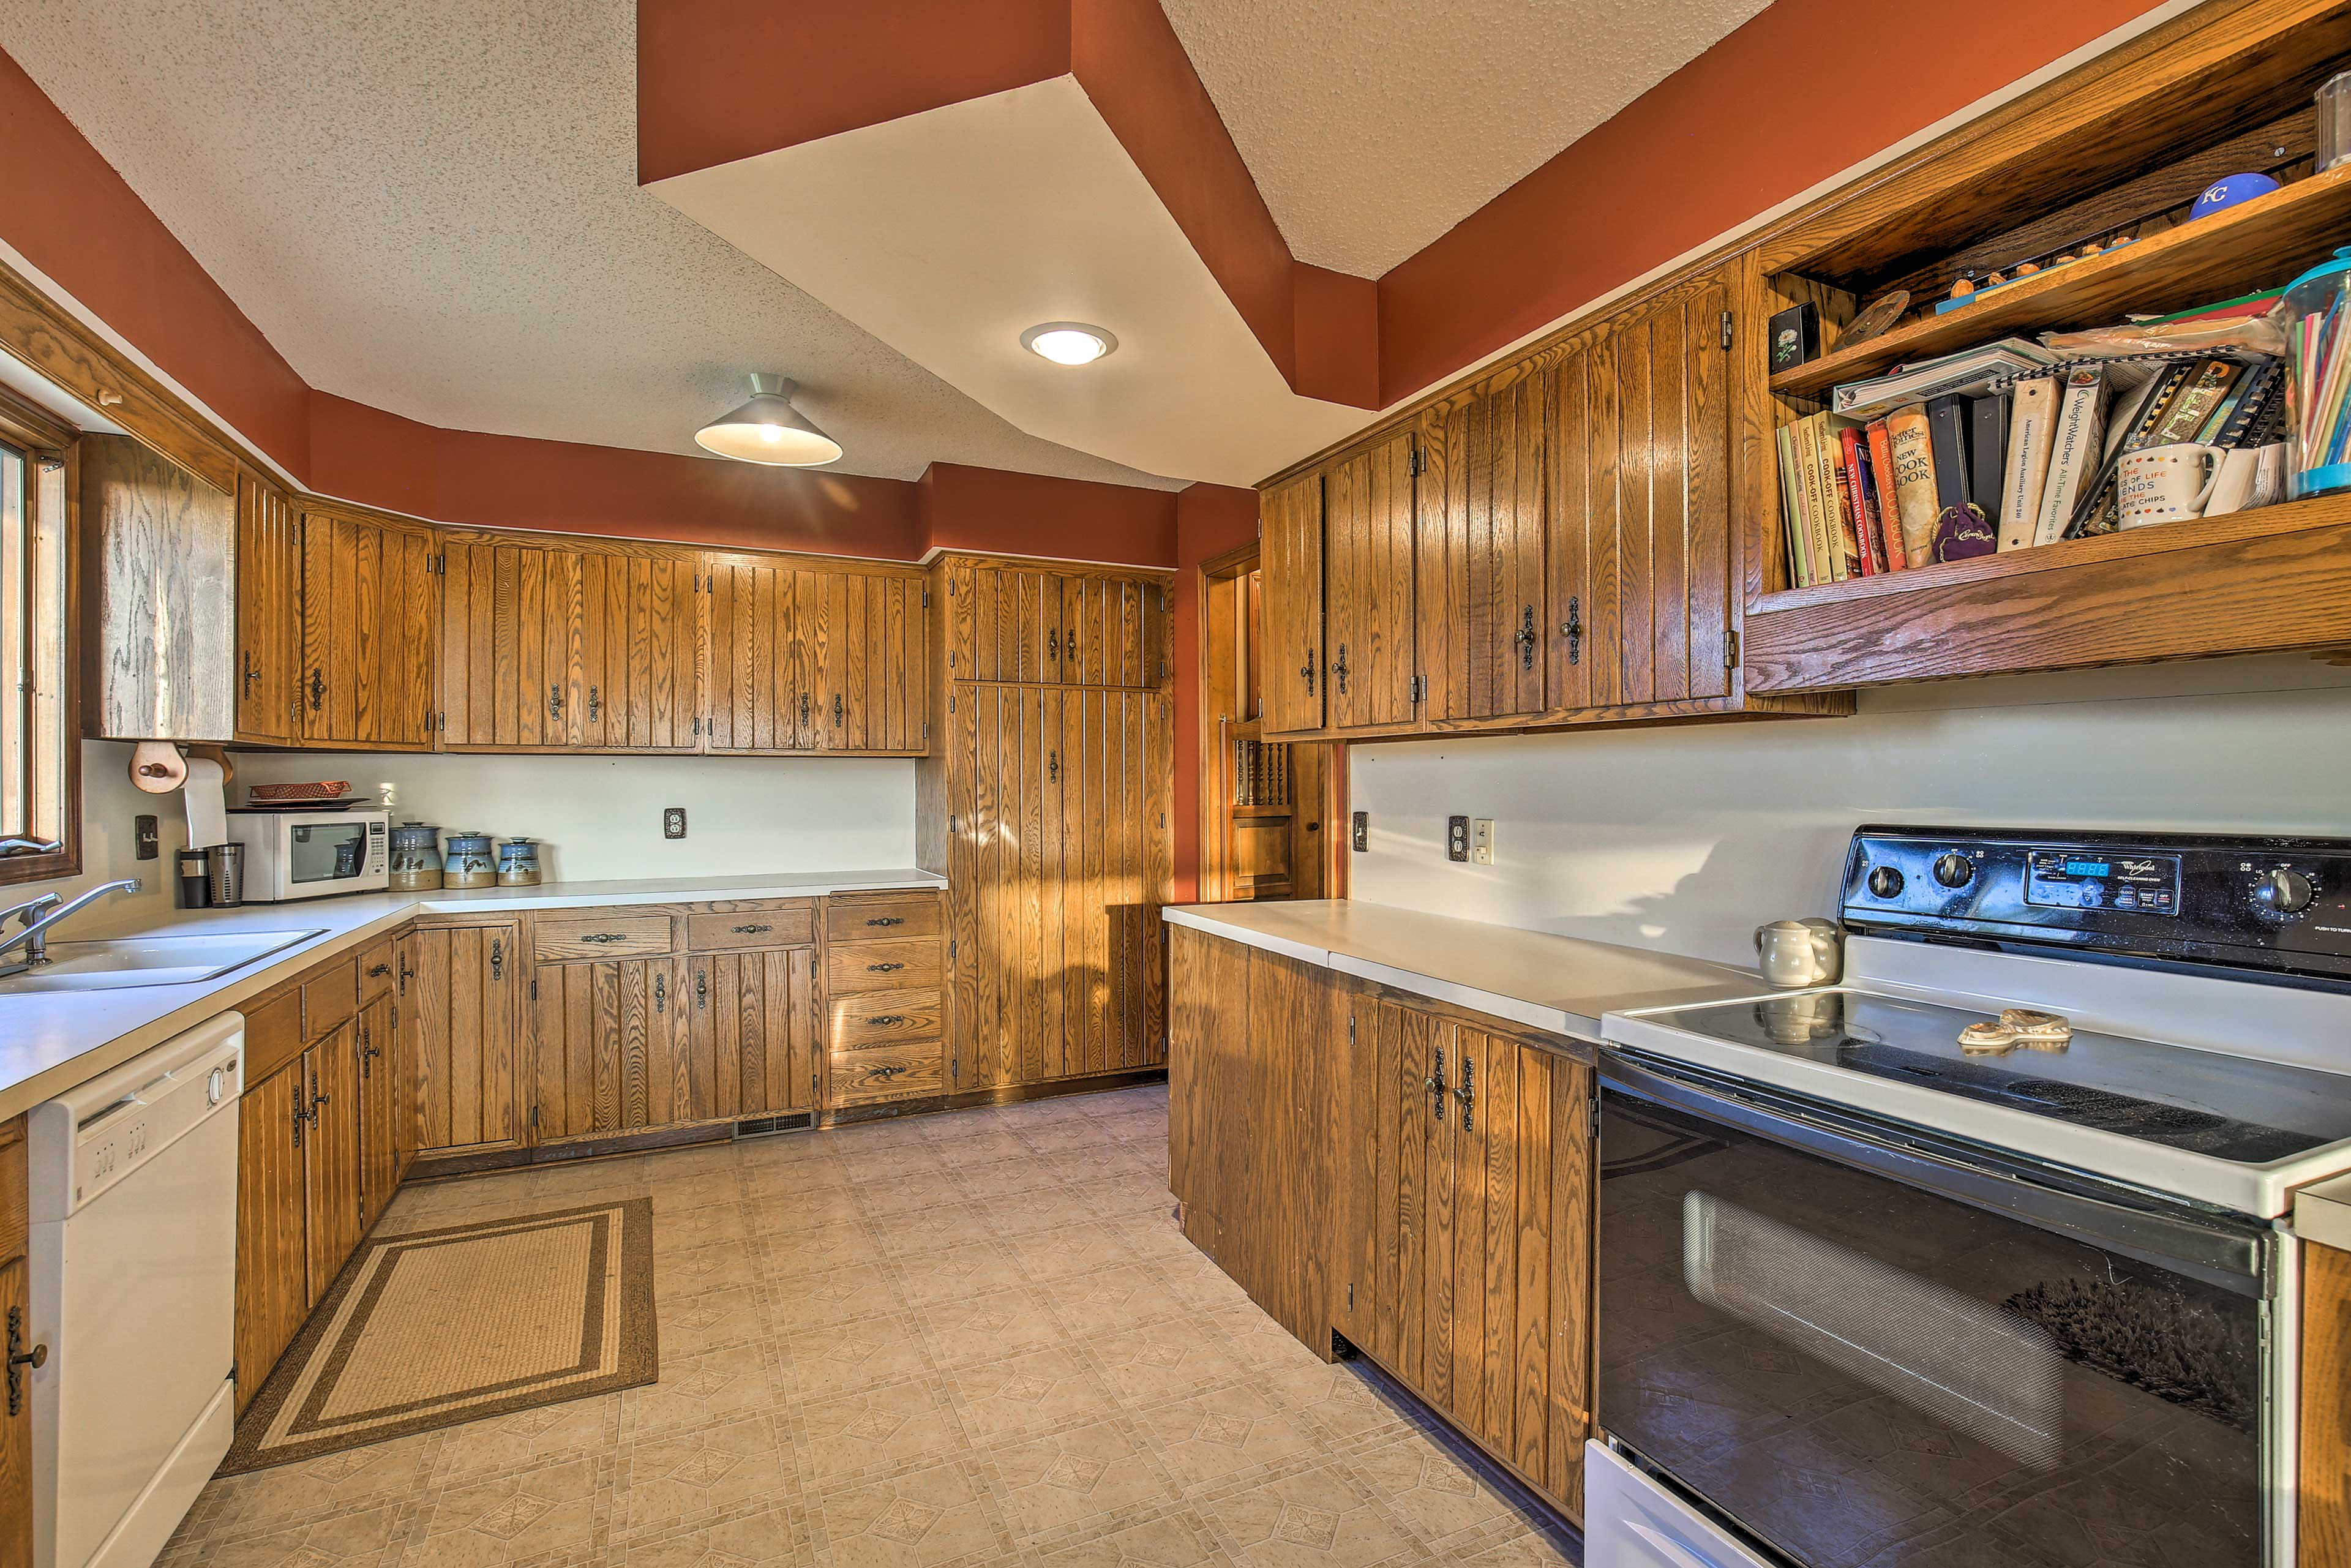 The kitchen offers all amenities necessary, including a drip coffee pot.